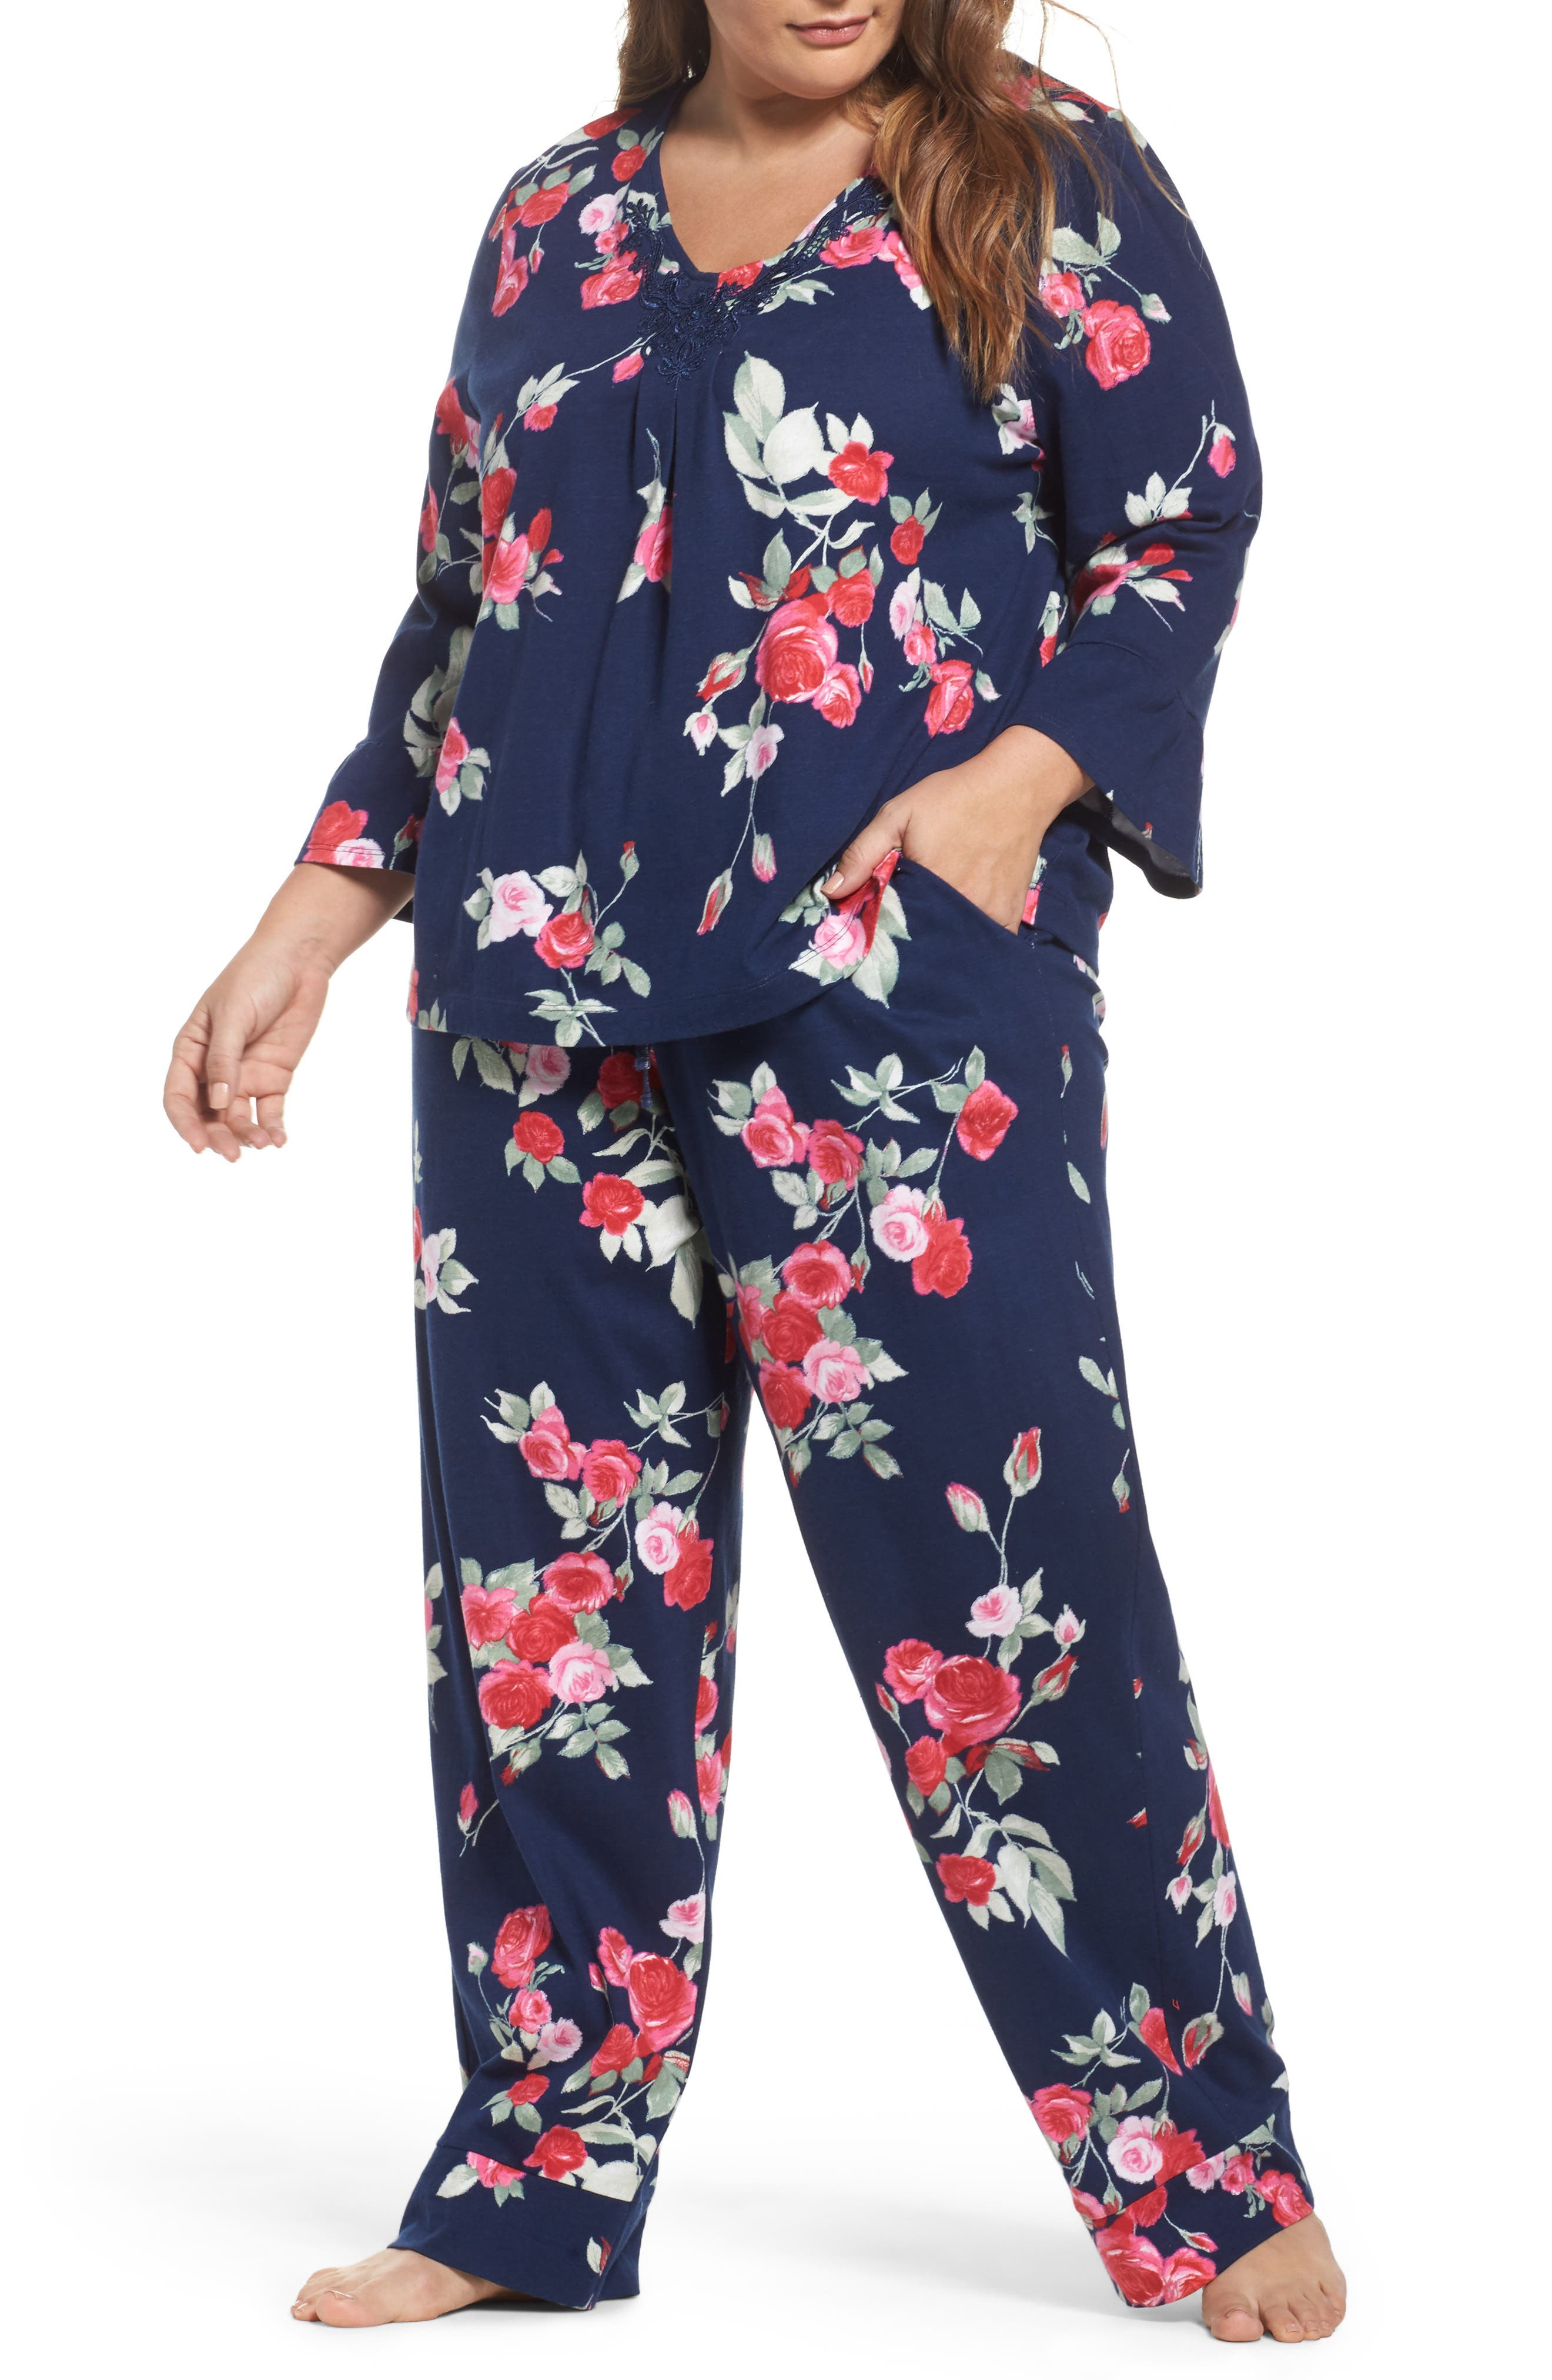 Alternate Image 1 Selected - Carole Hochman Floral Print Pajamas (Plus Size)